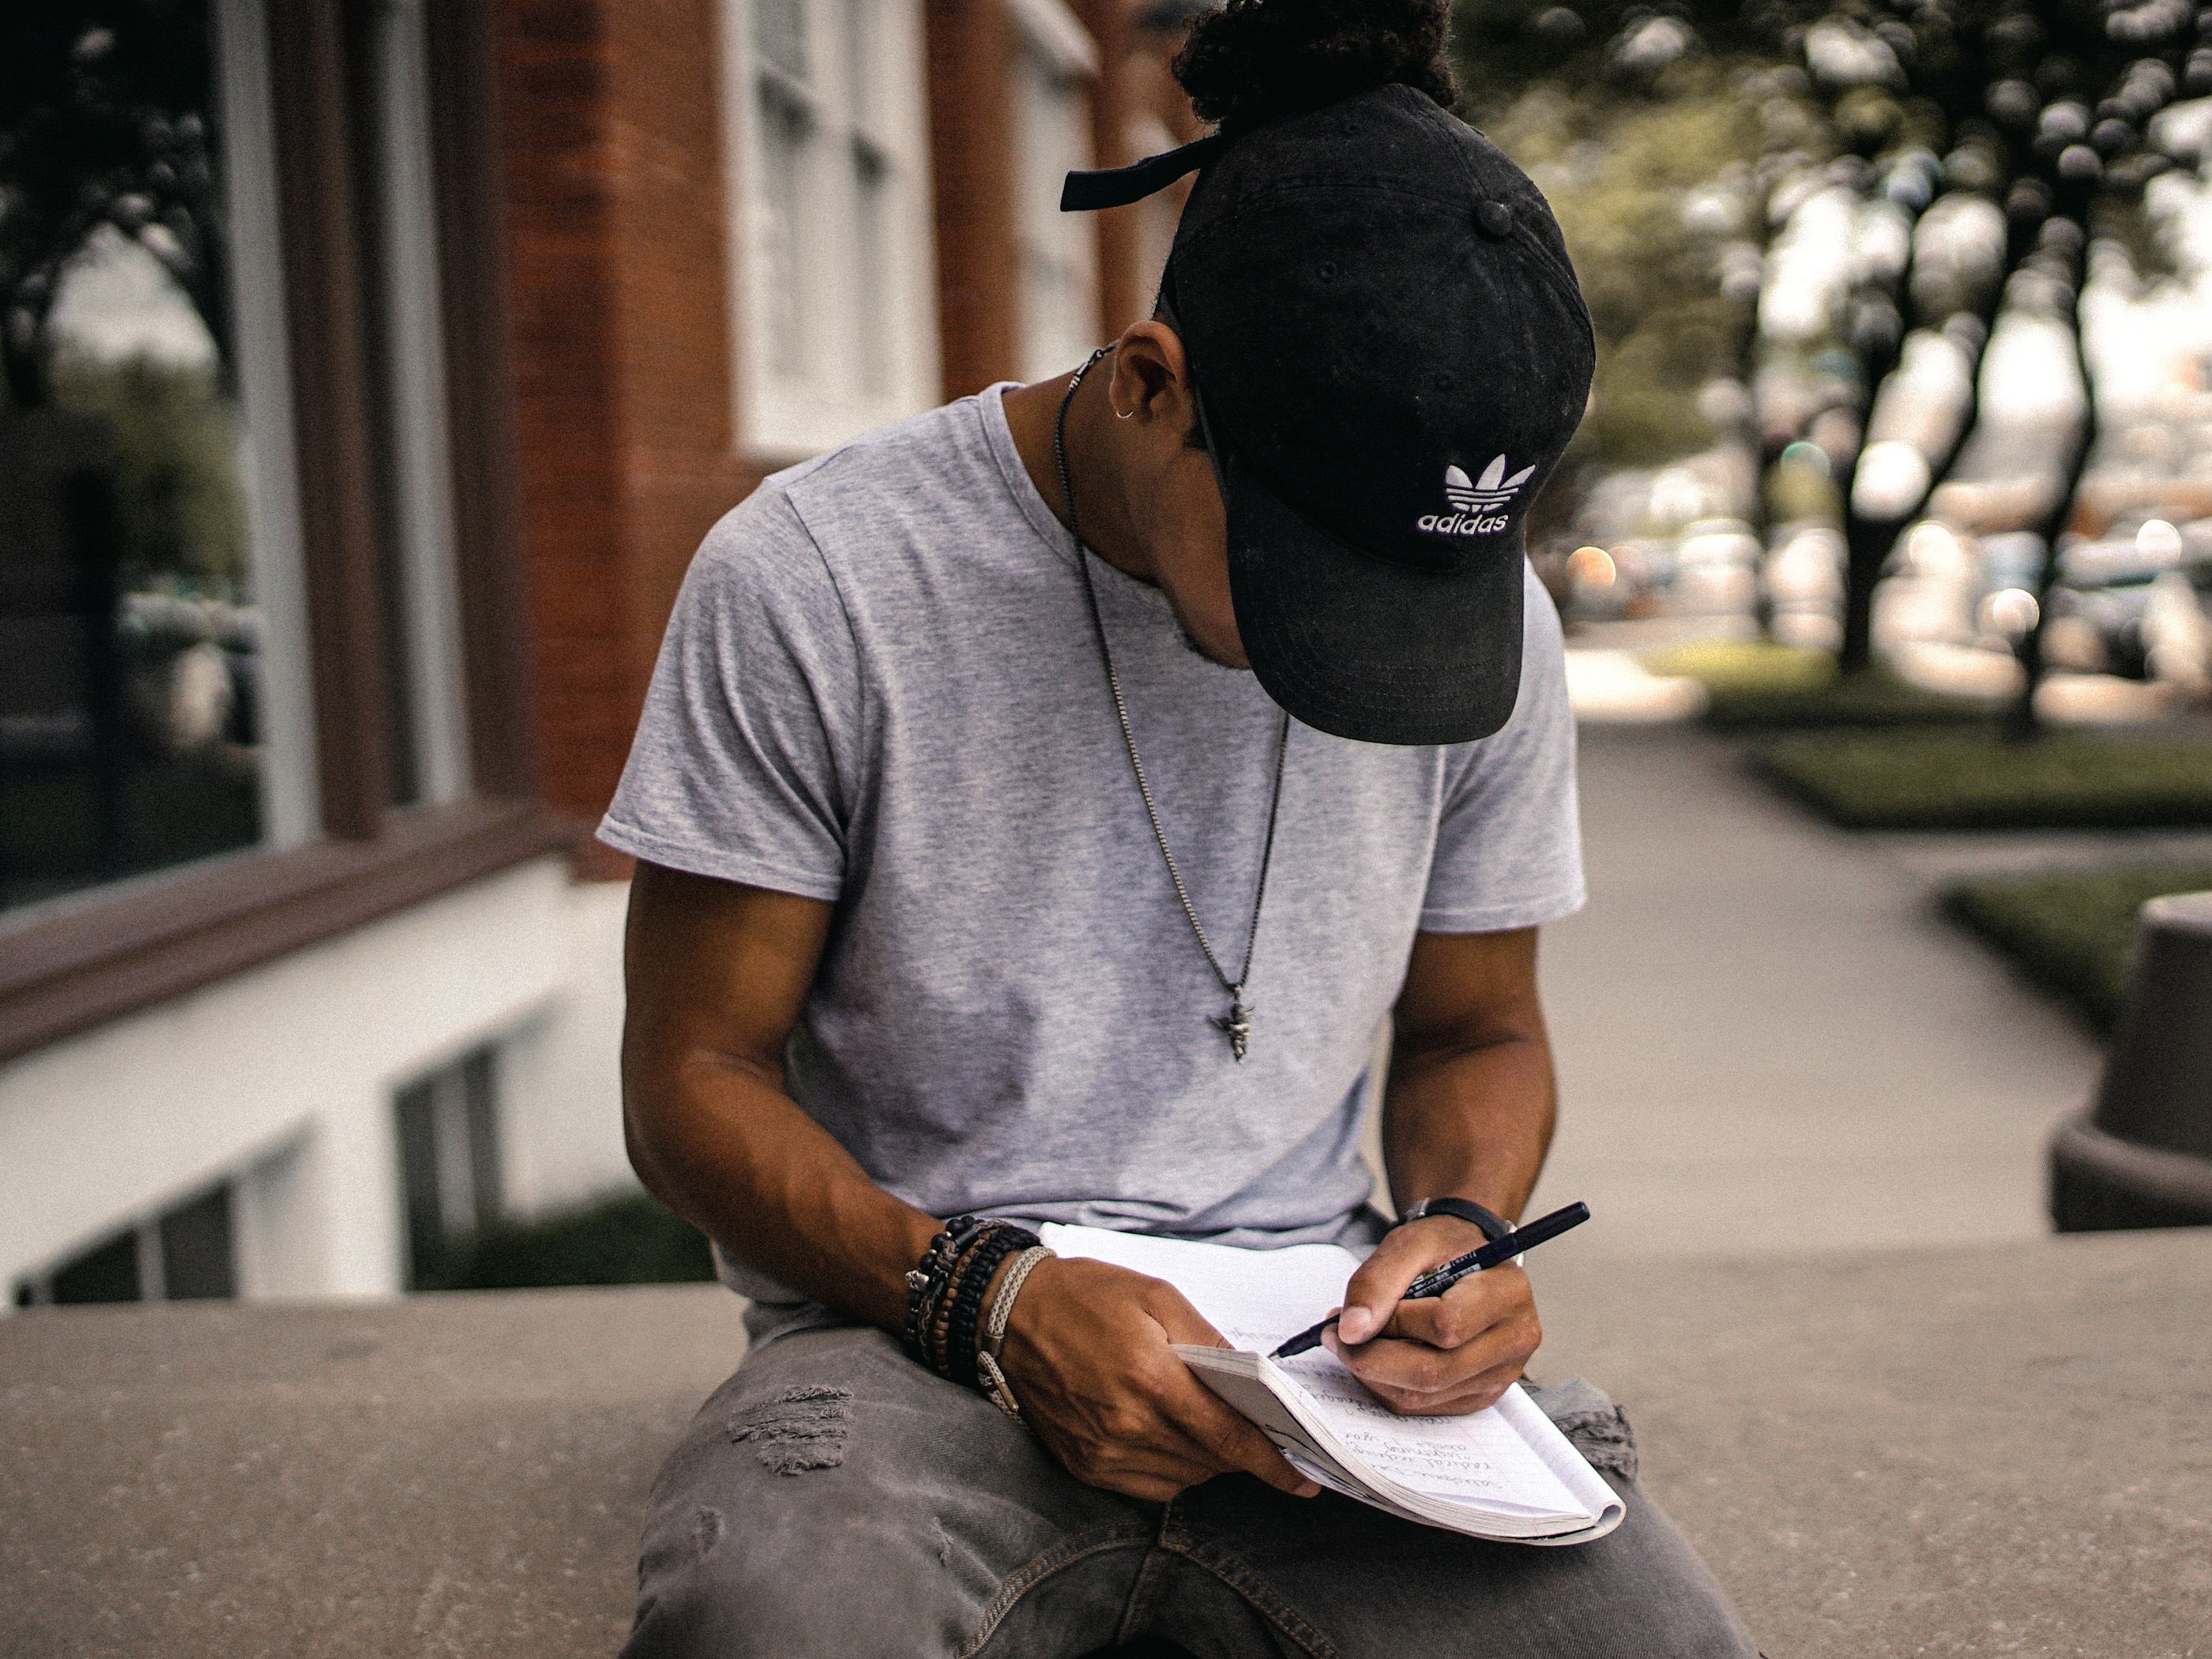 A man writes a letter on a notepad, while sitting in the street